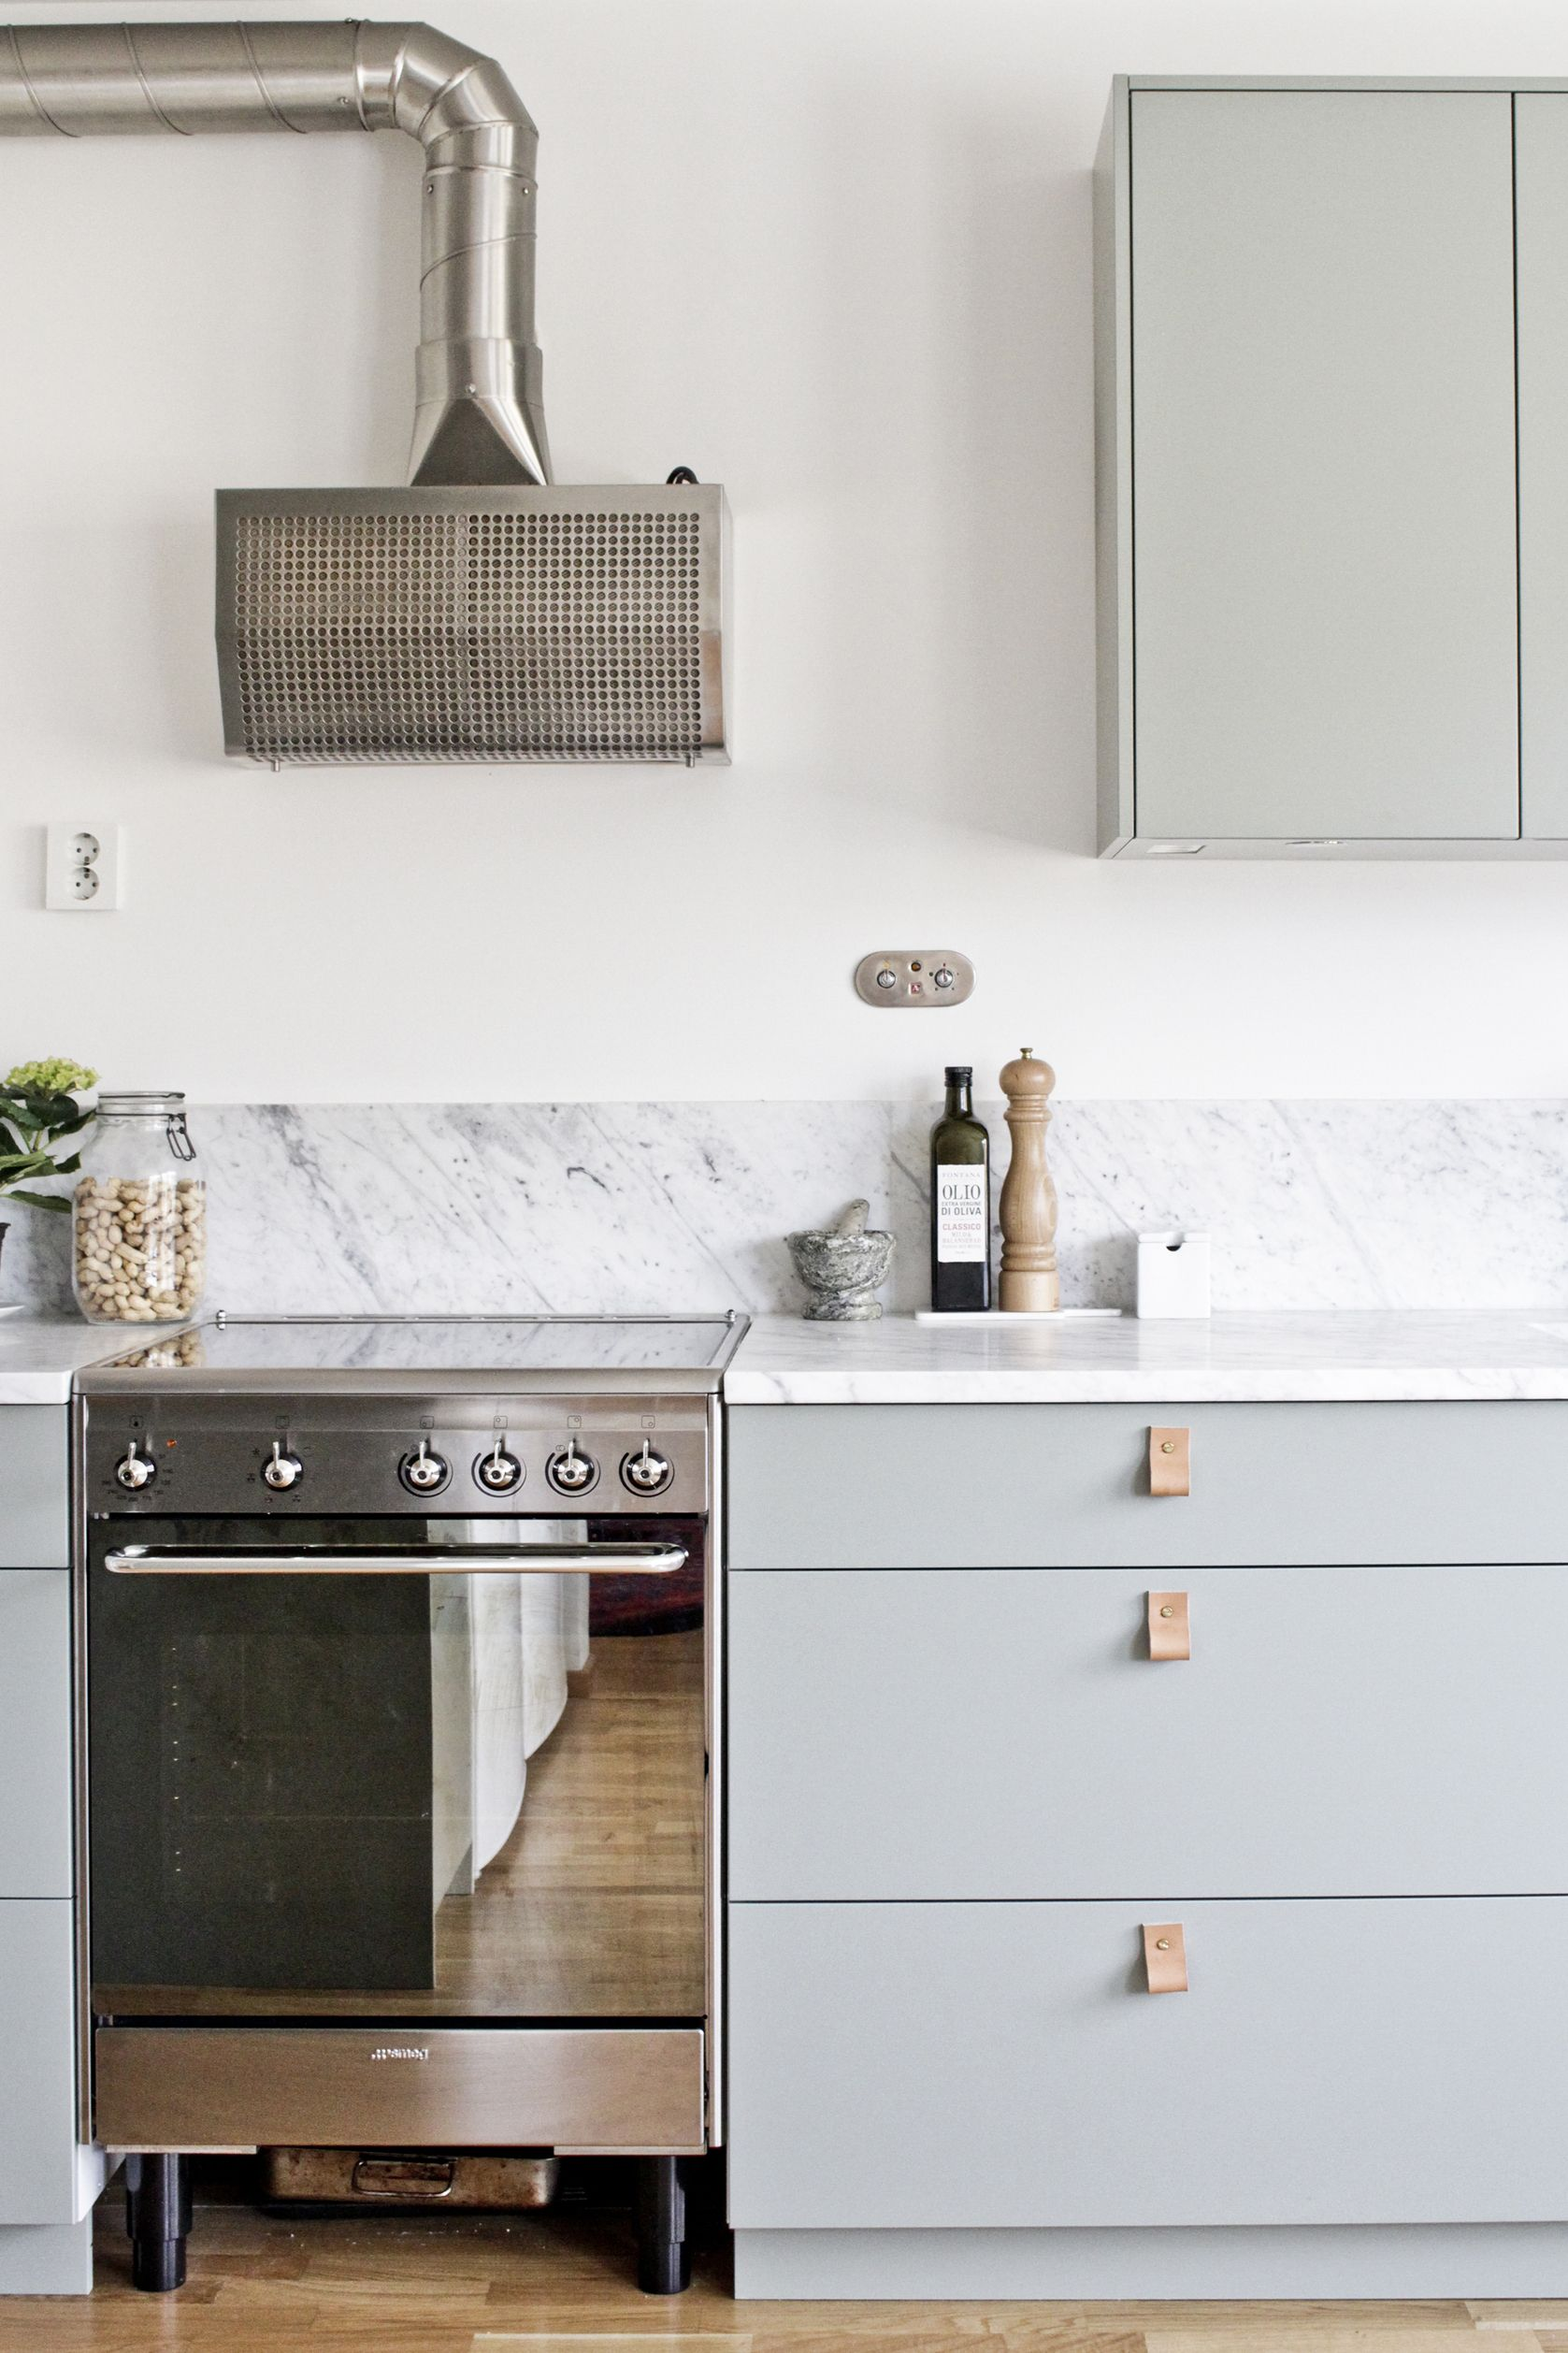 our kitchen - green fronts, marble counter top, smeg stove, alpes ...